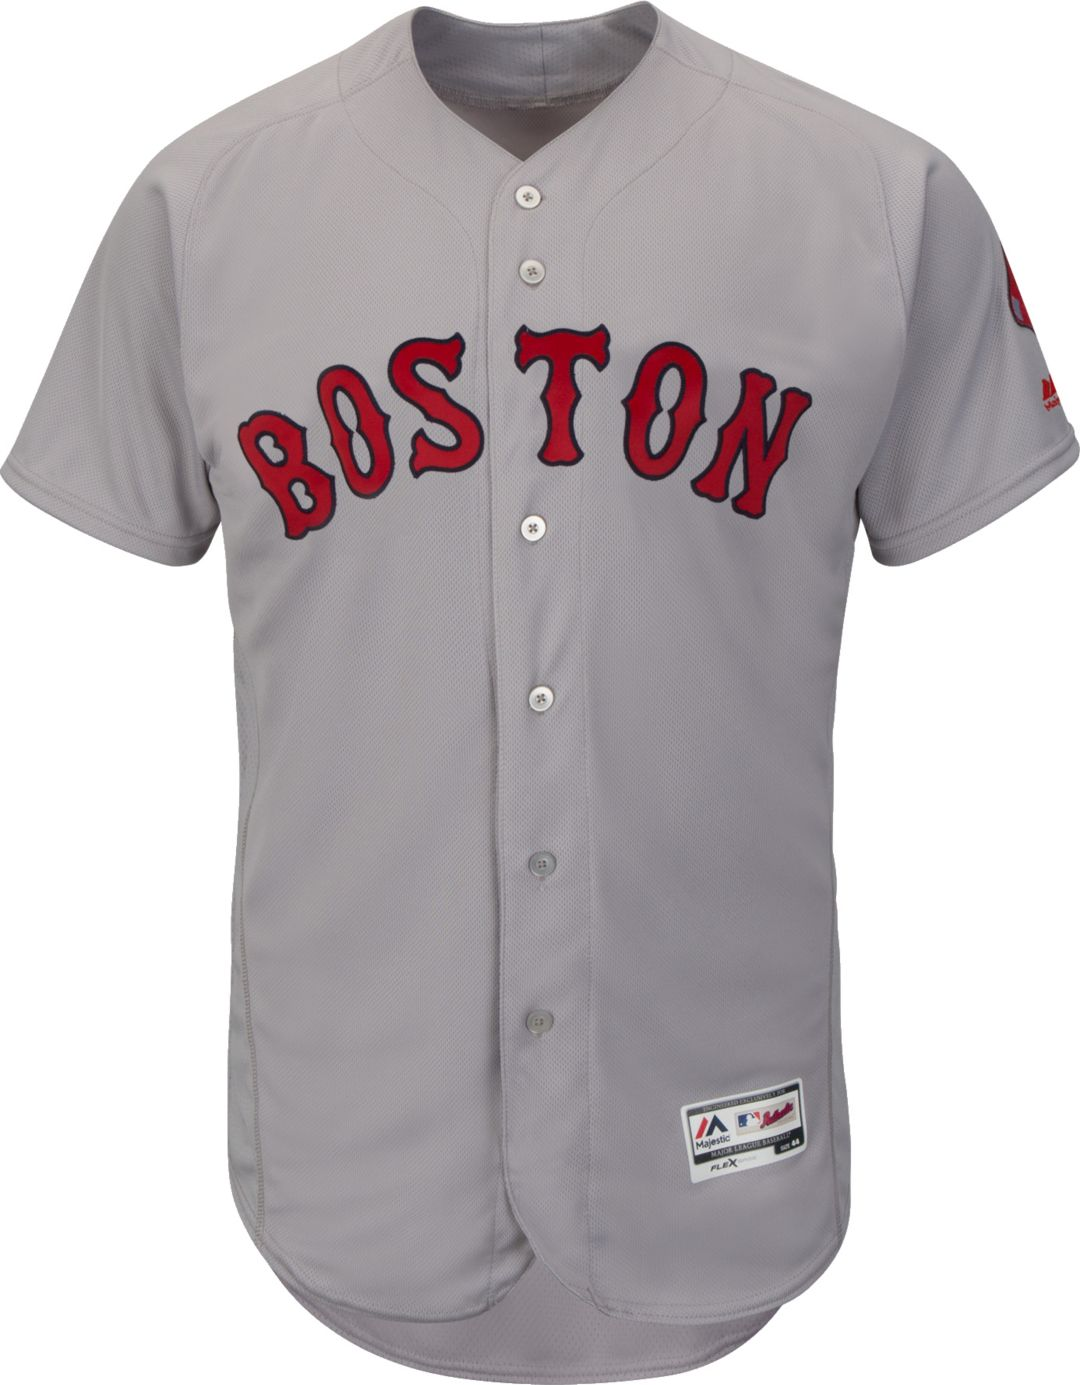 wholesale dealer c5286 b95ab Majestic Men's Authentic Boston Red Sox J.D. Martinez #28 Flex Base Road  Grey On-Field Jersey